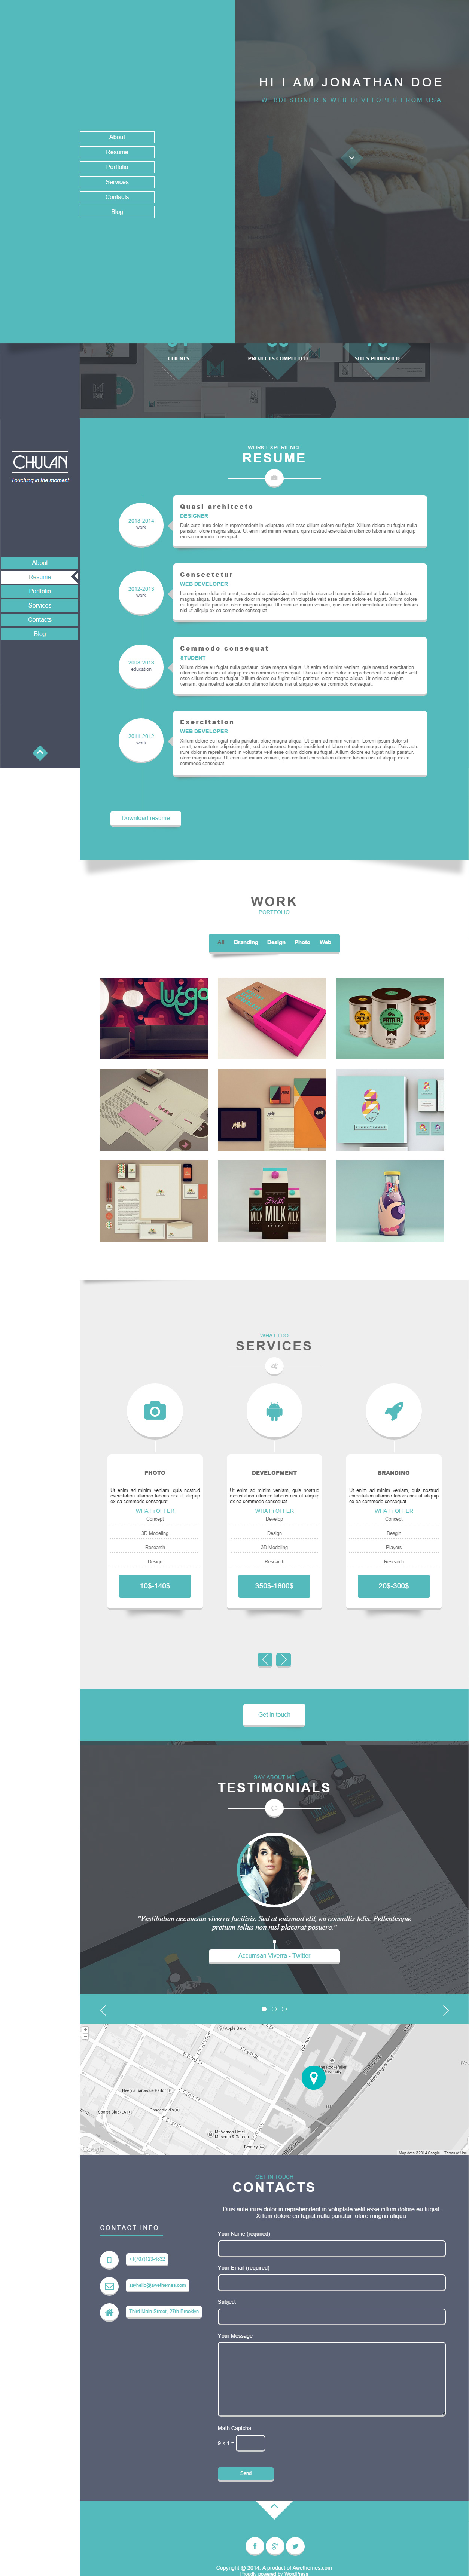 5+ Best Responsive WordPress Resume and CV Templates in 2014 ...